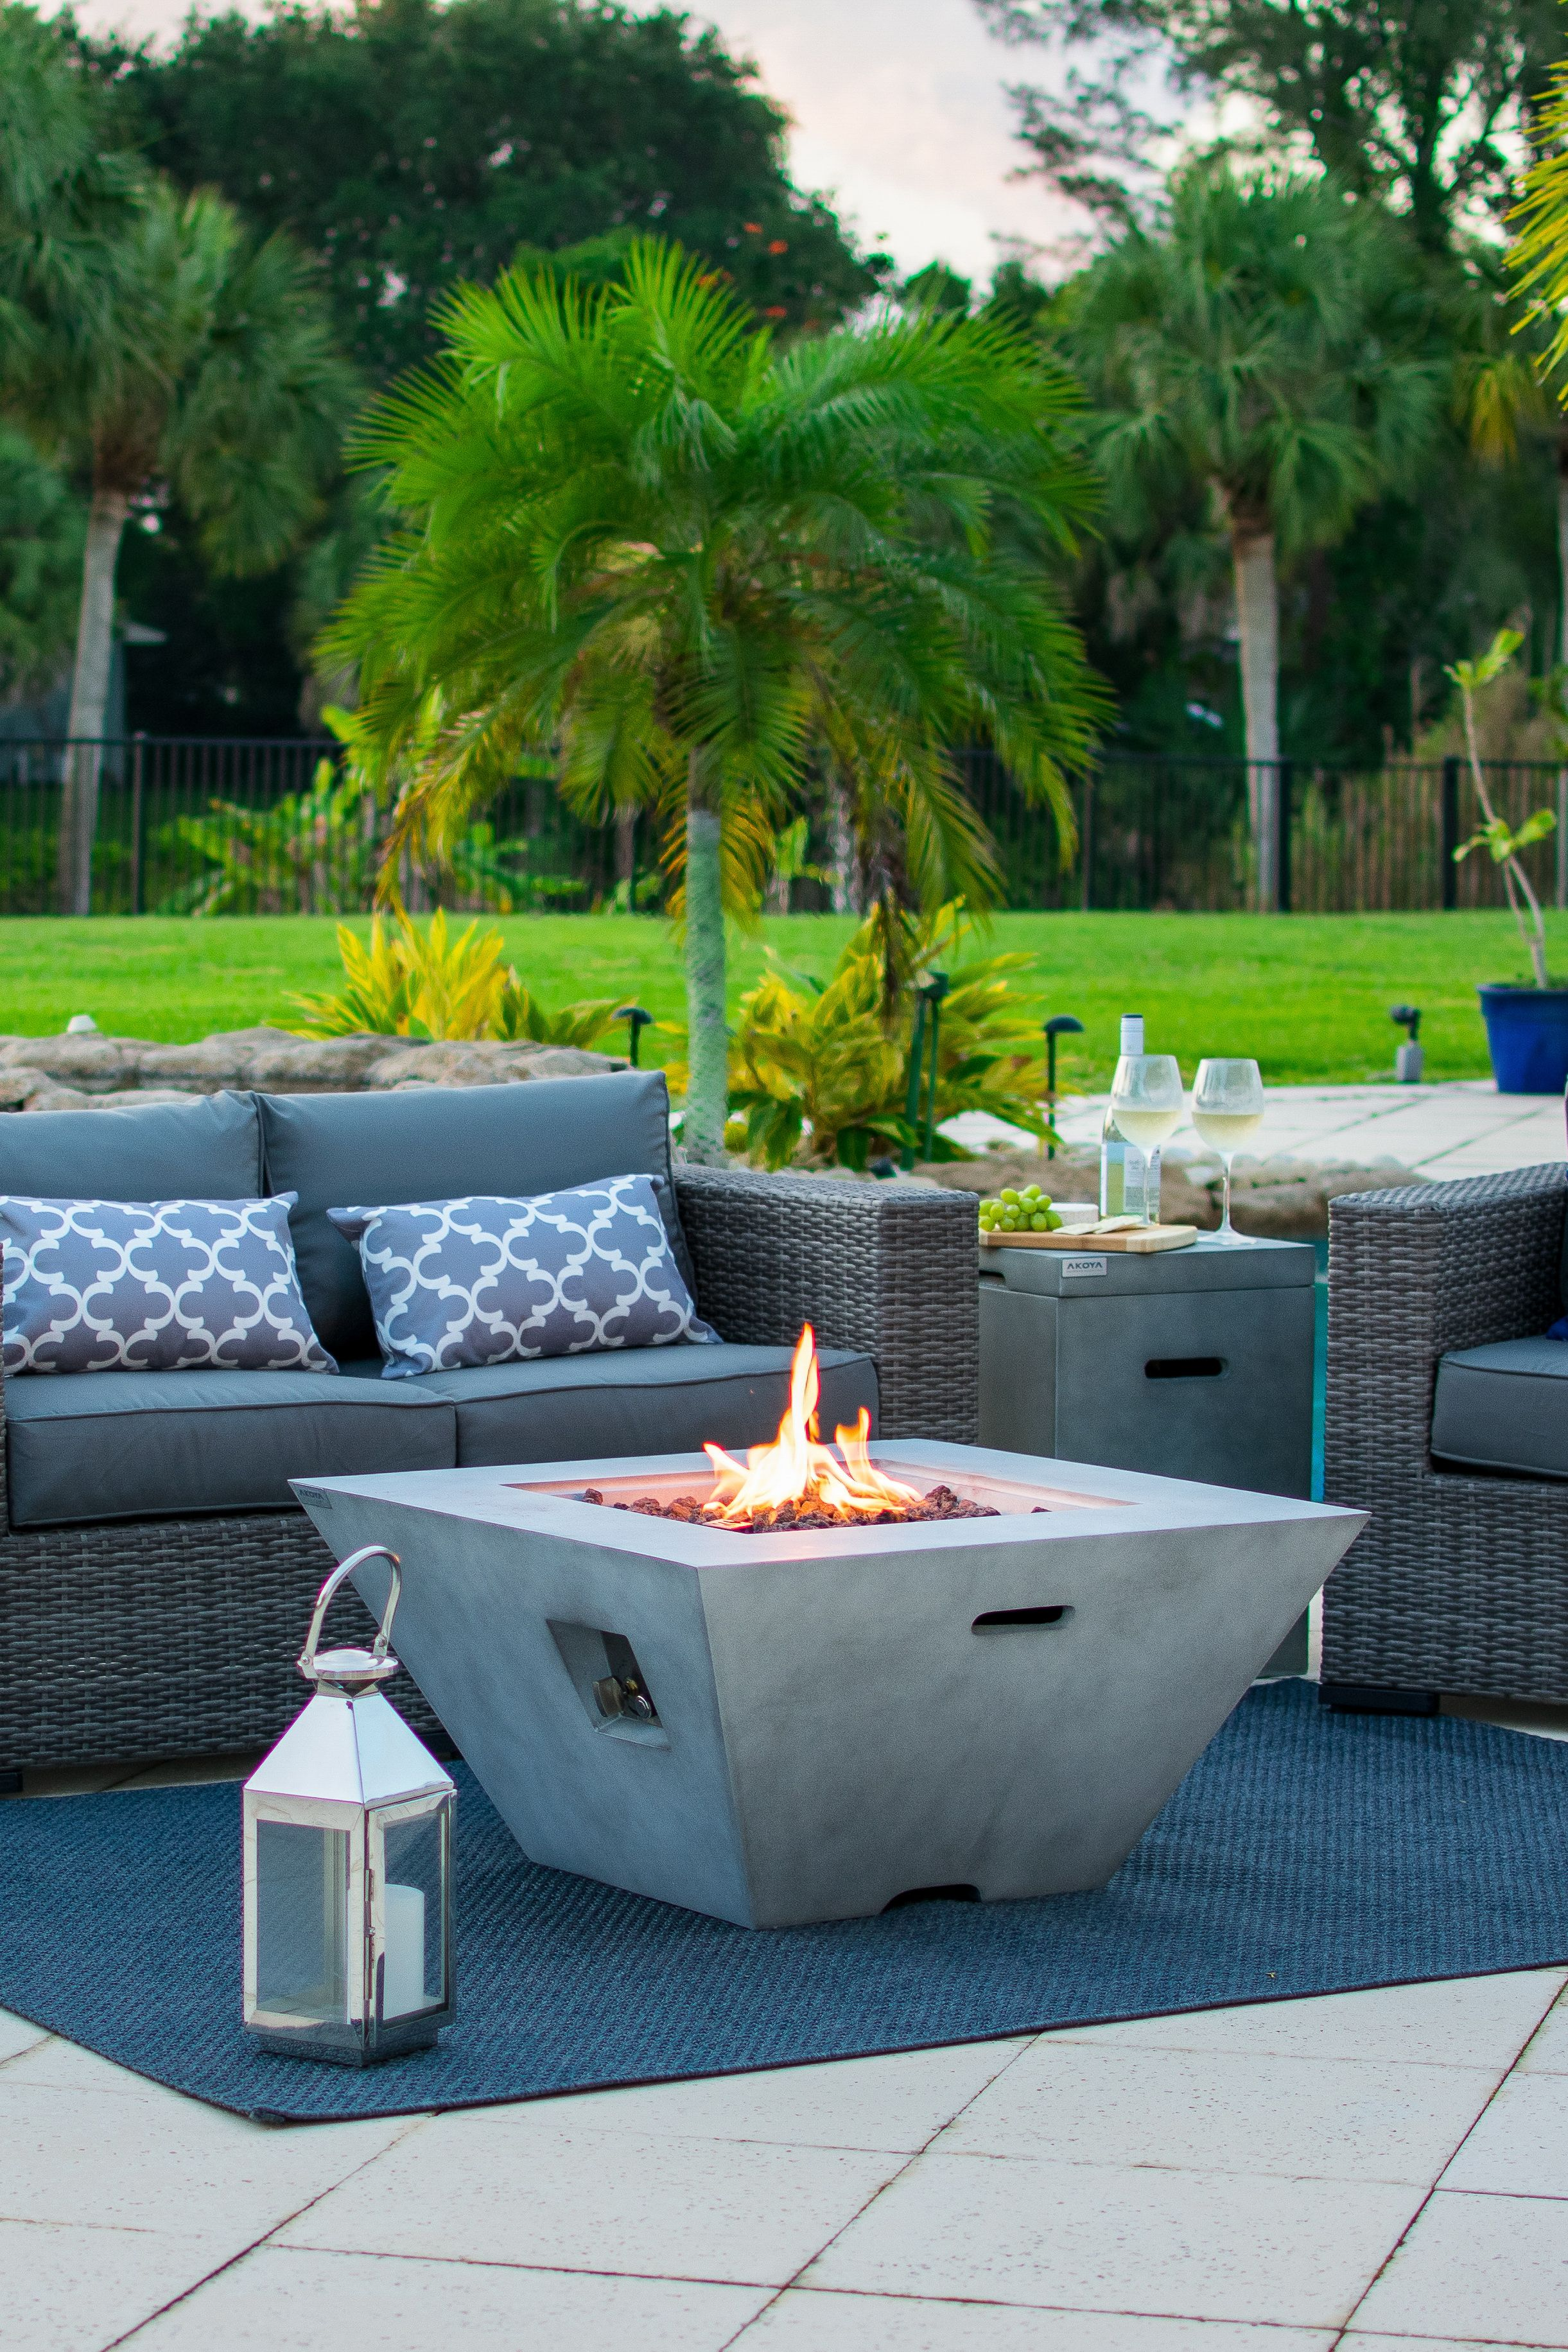 34 outdoor propane gas fire pit table square bowl in gray